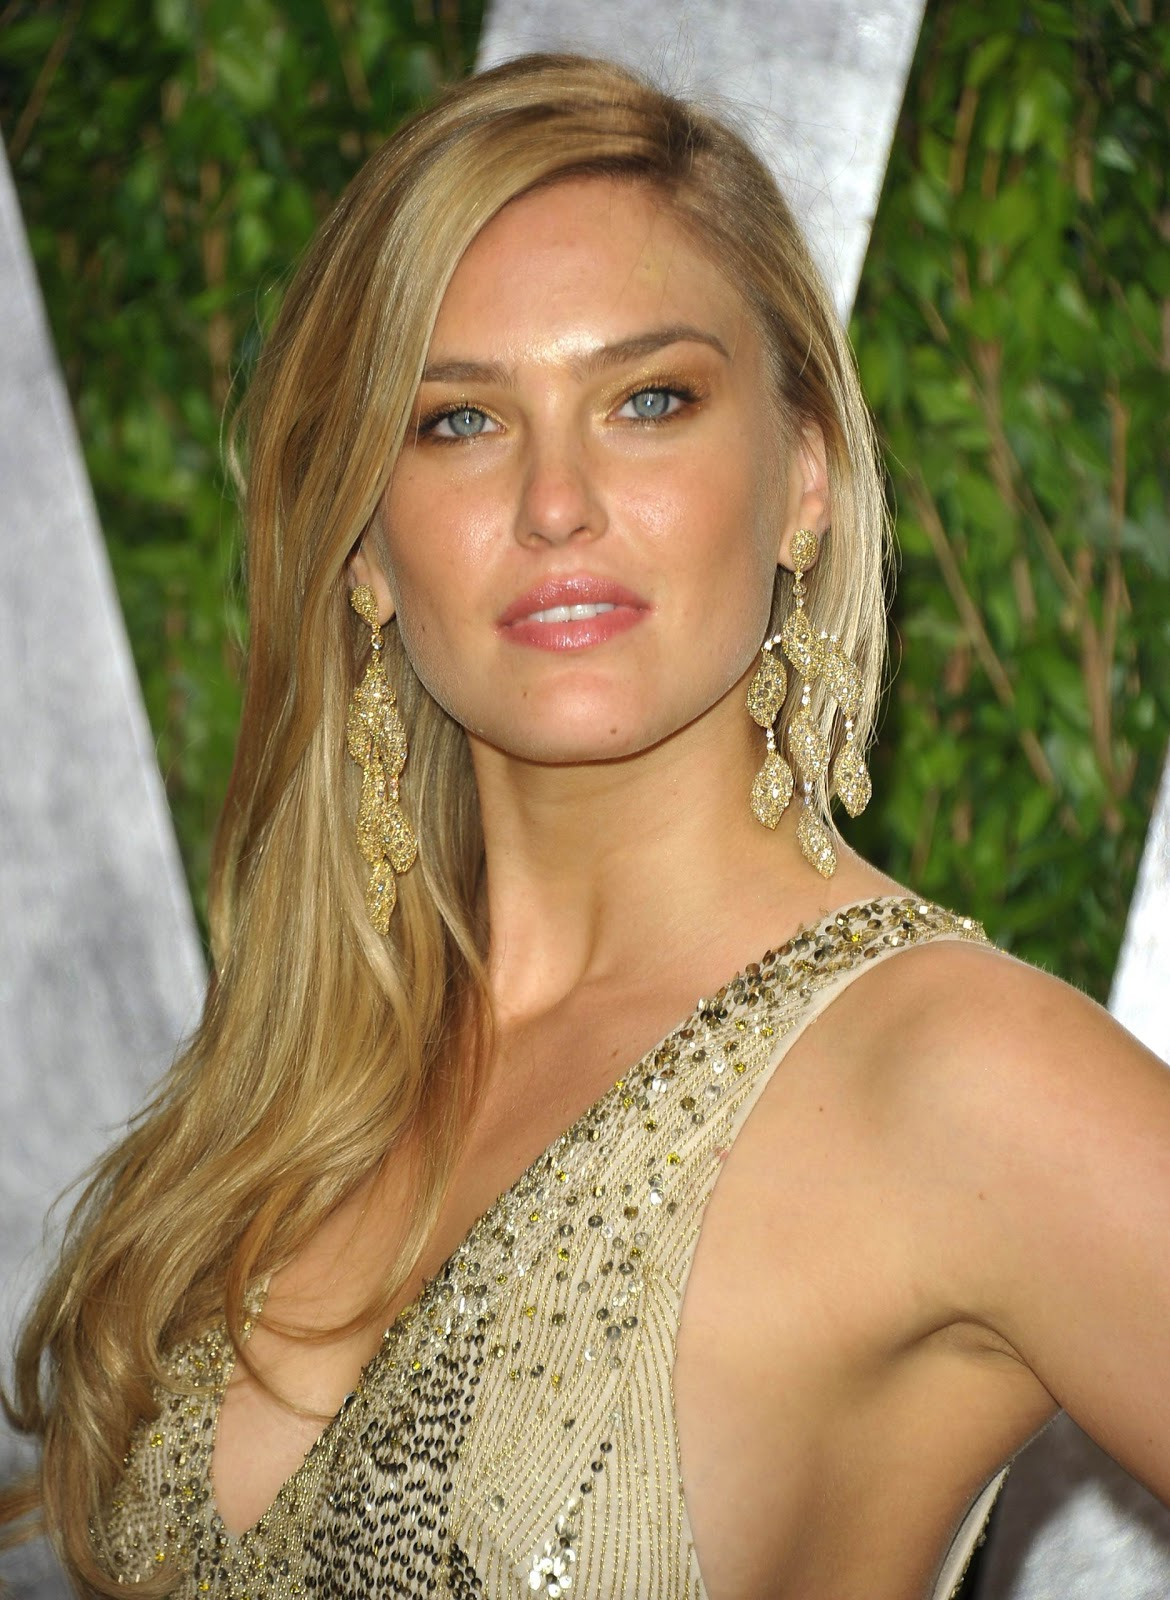 Bar Refaeli Profile And Imagespictures 2012  Hot -8019